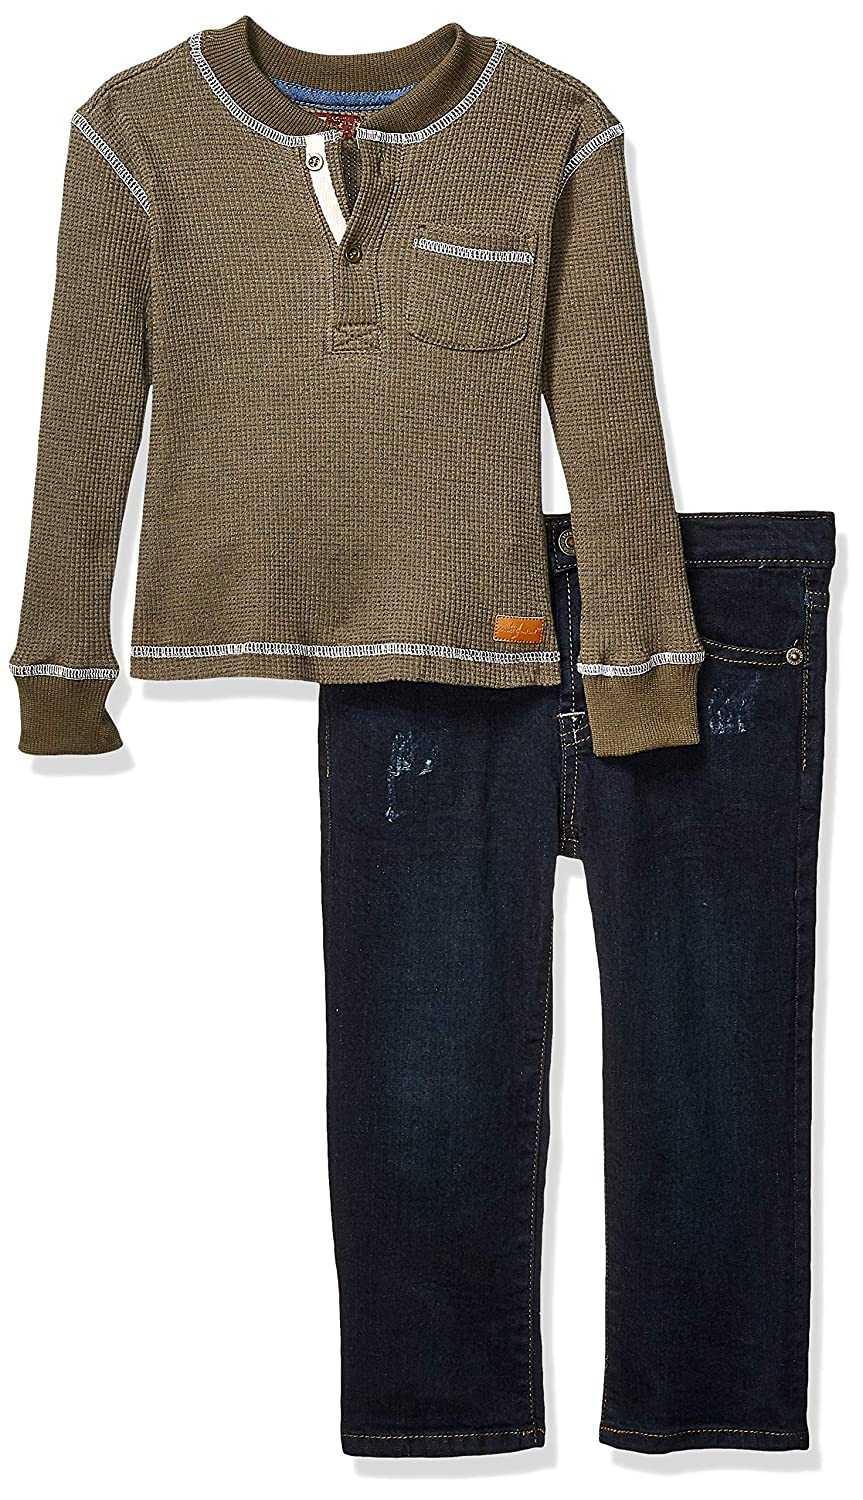 7 For All Mankind Boys Toddler Thermal Shirt and Denim Jean Set